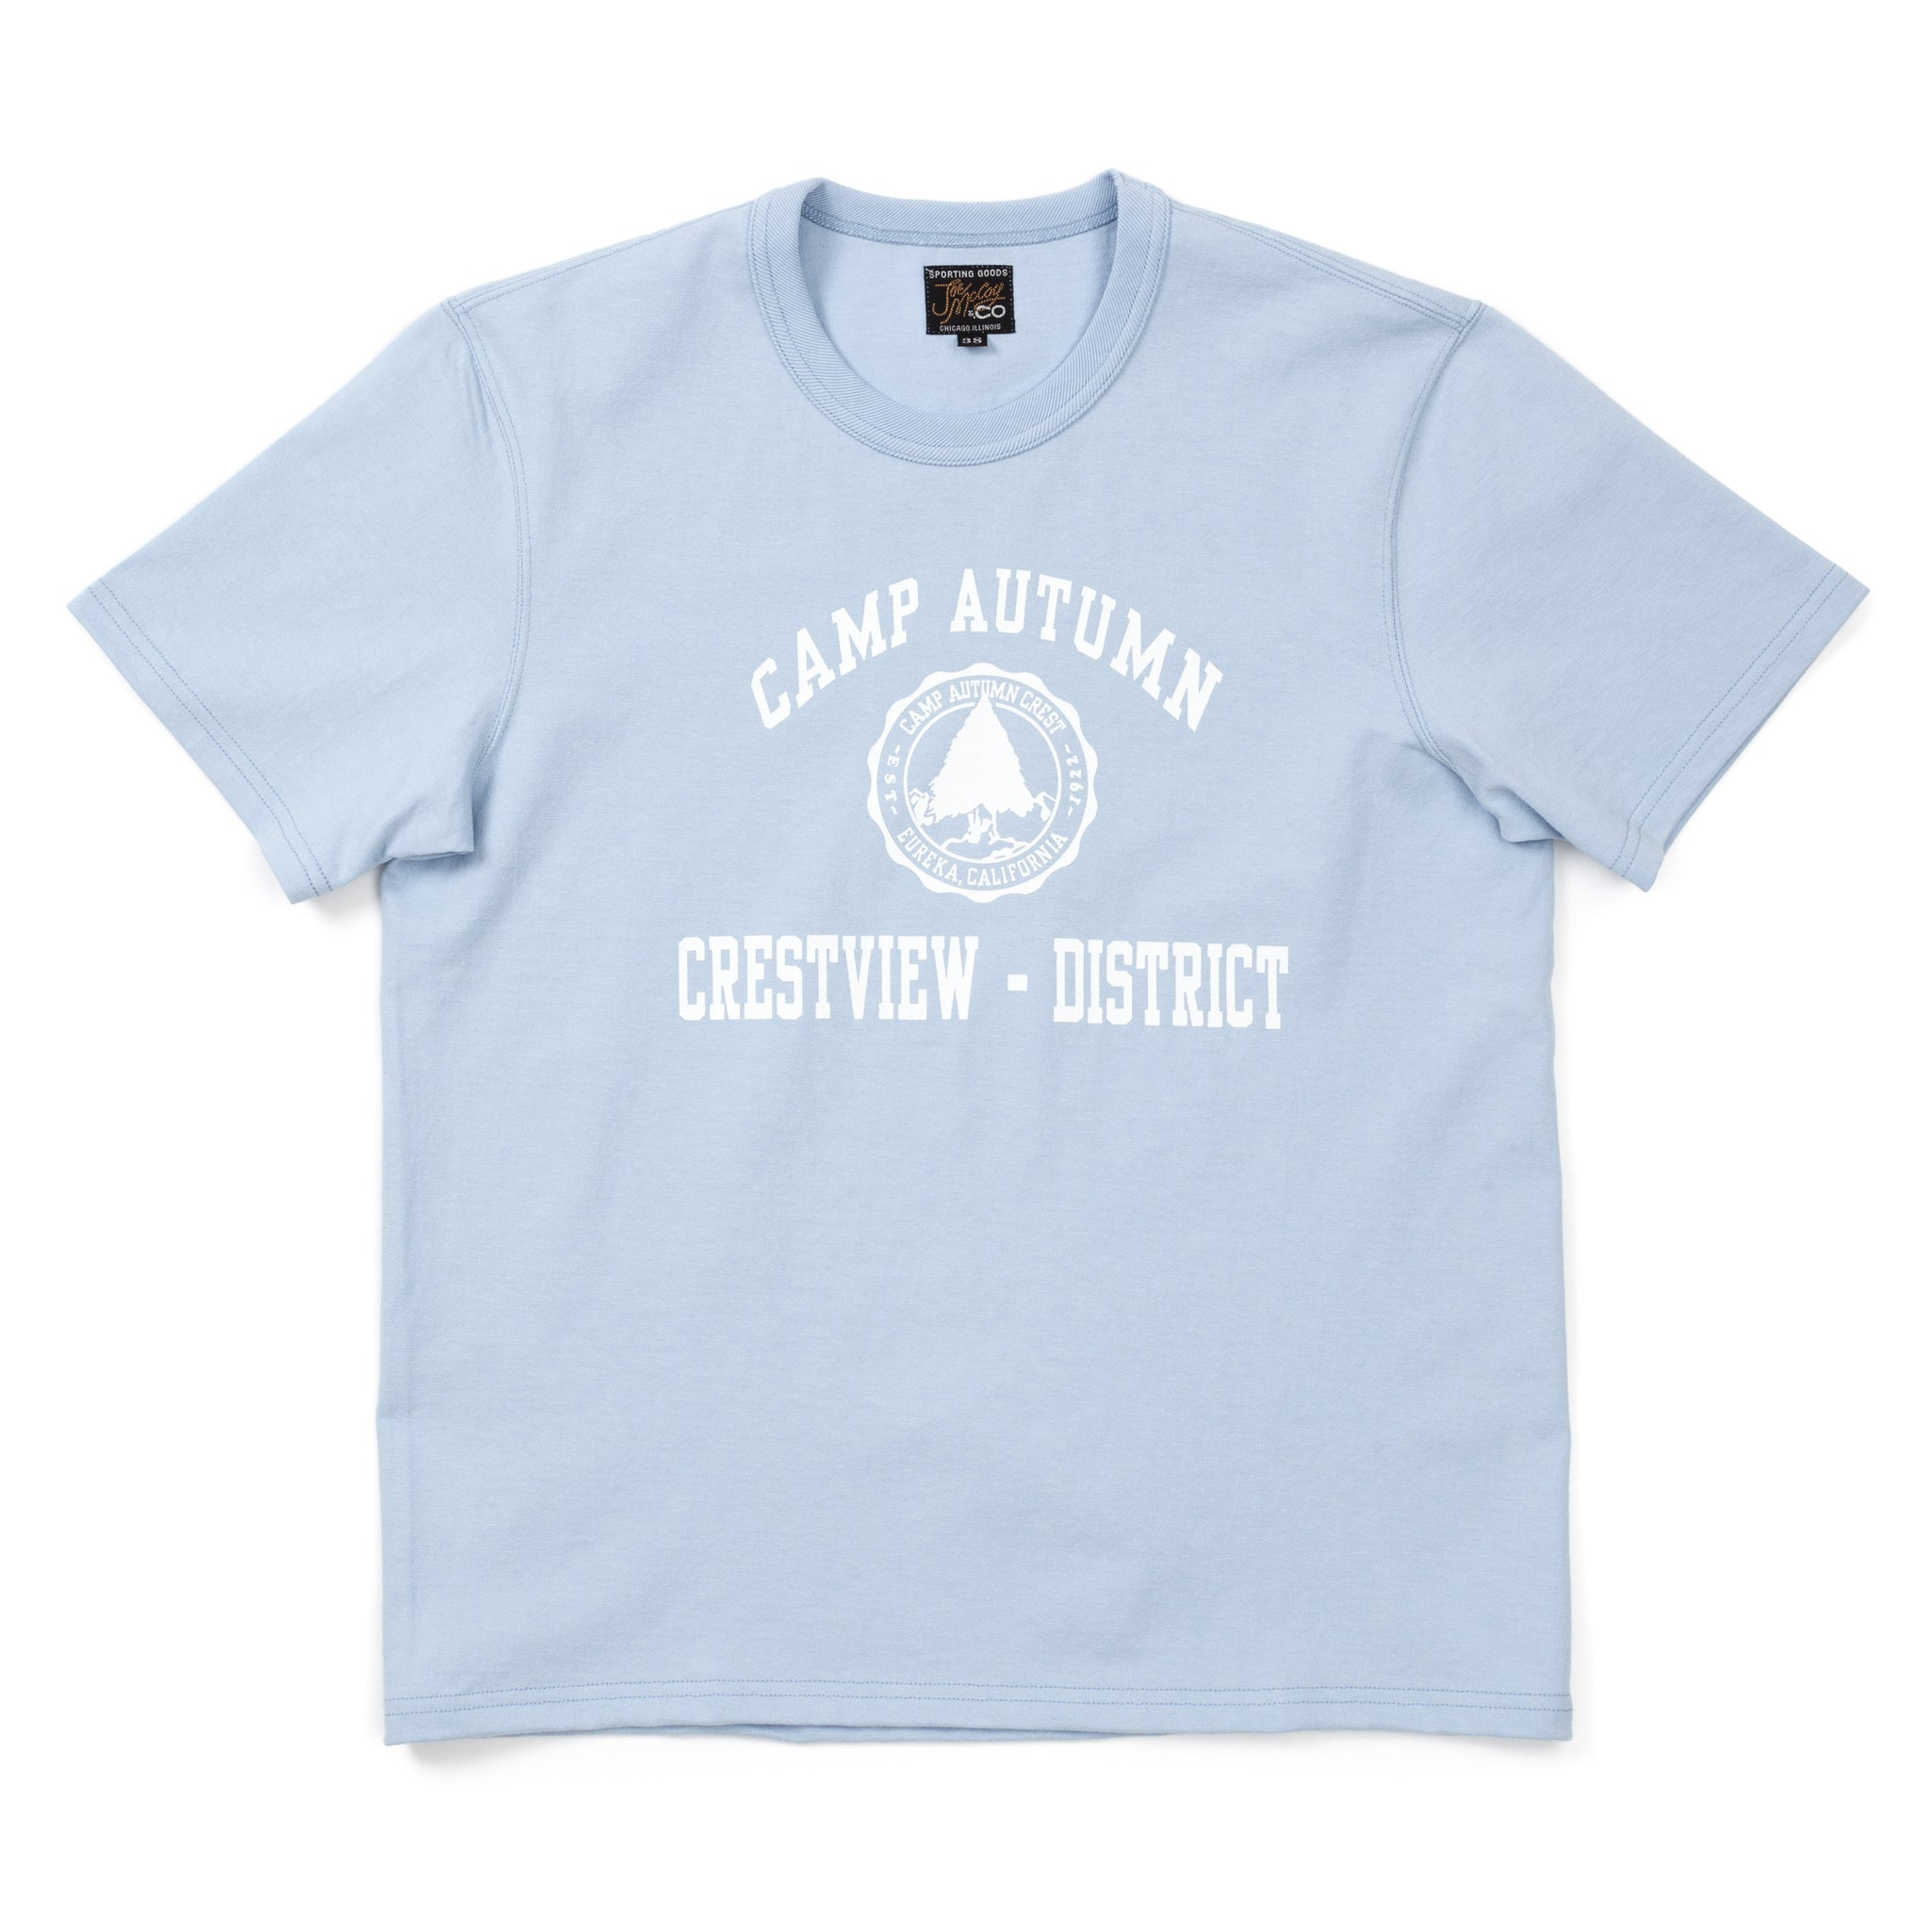 Joe McCoy Tee / Camp Autumn MC15024